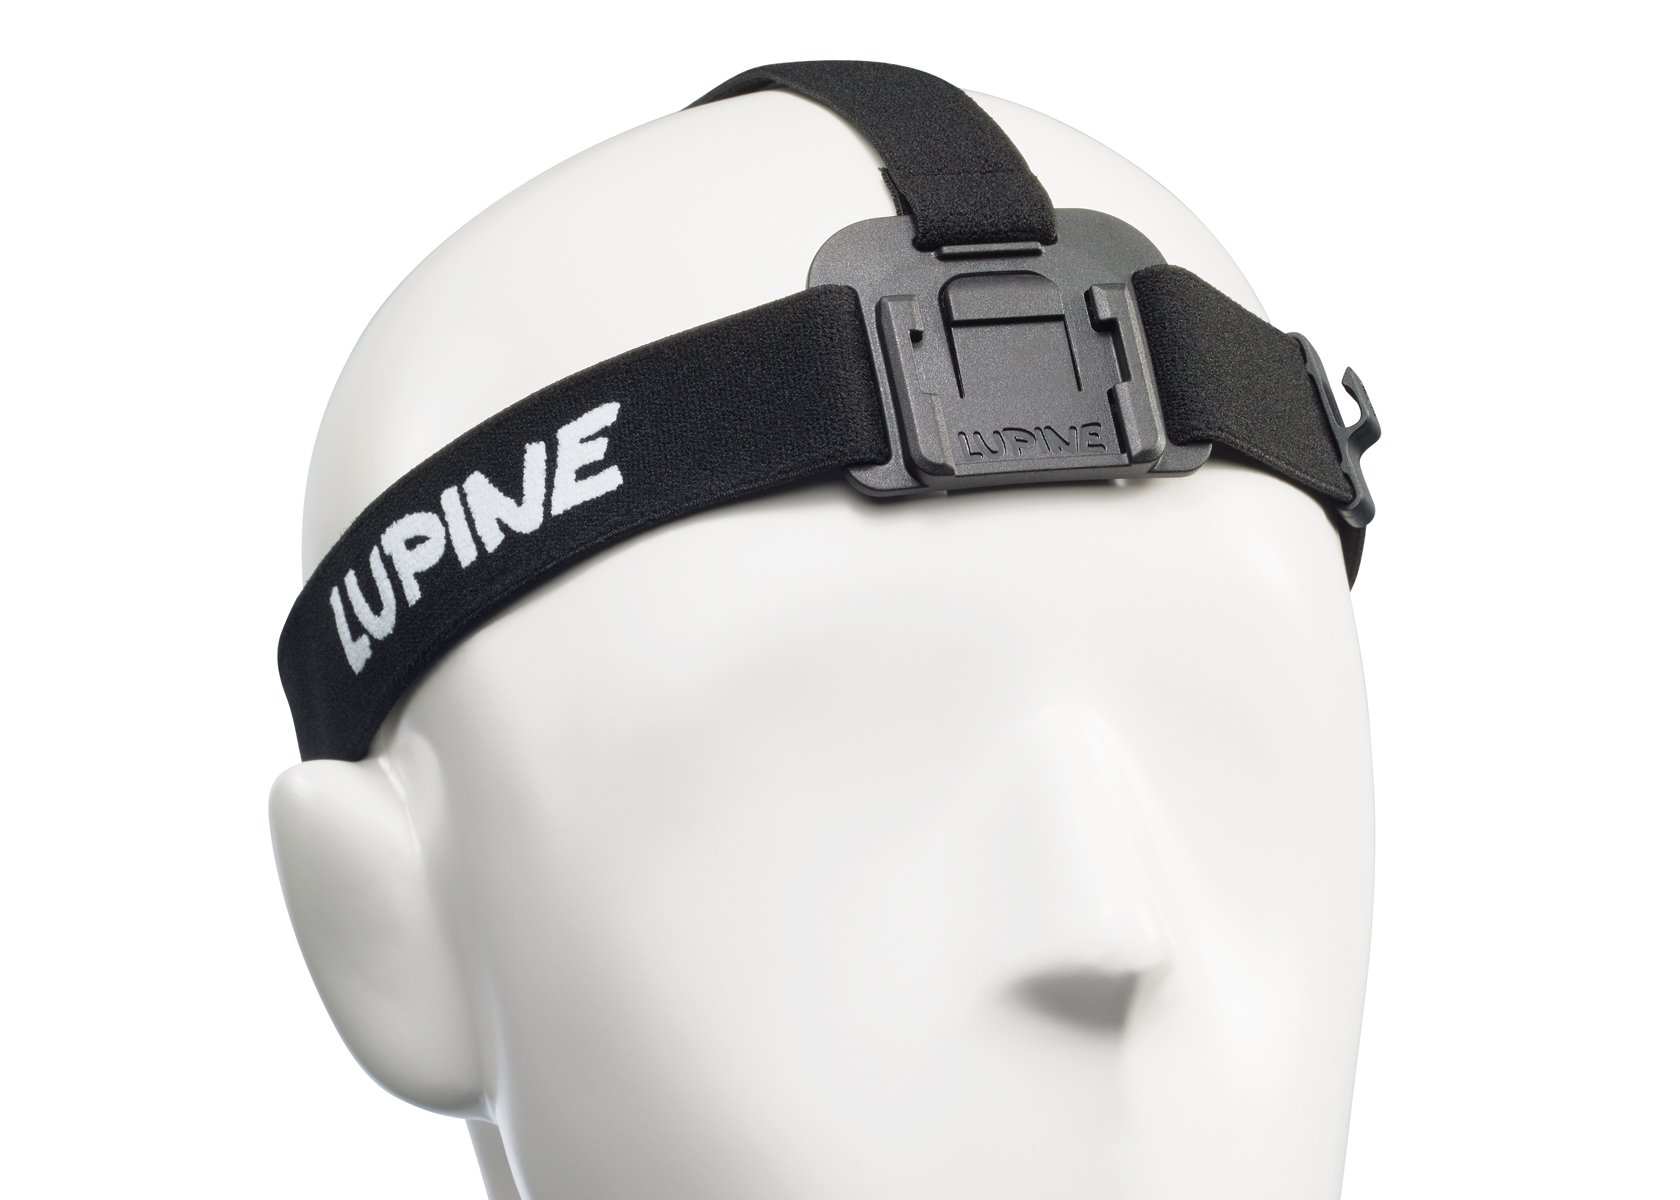 Headband for Piko/Piko R (1500 Lumens) and Blika (2100 lumens)